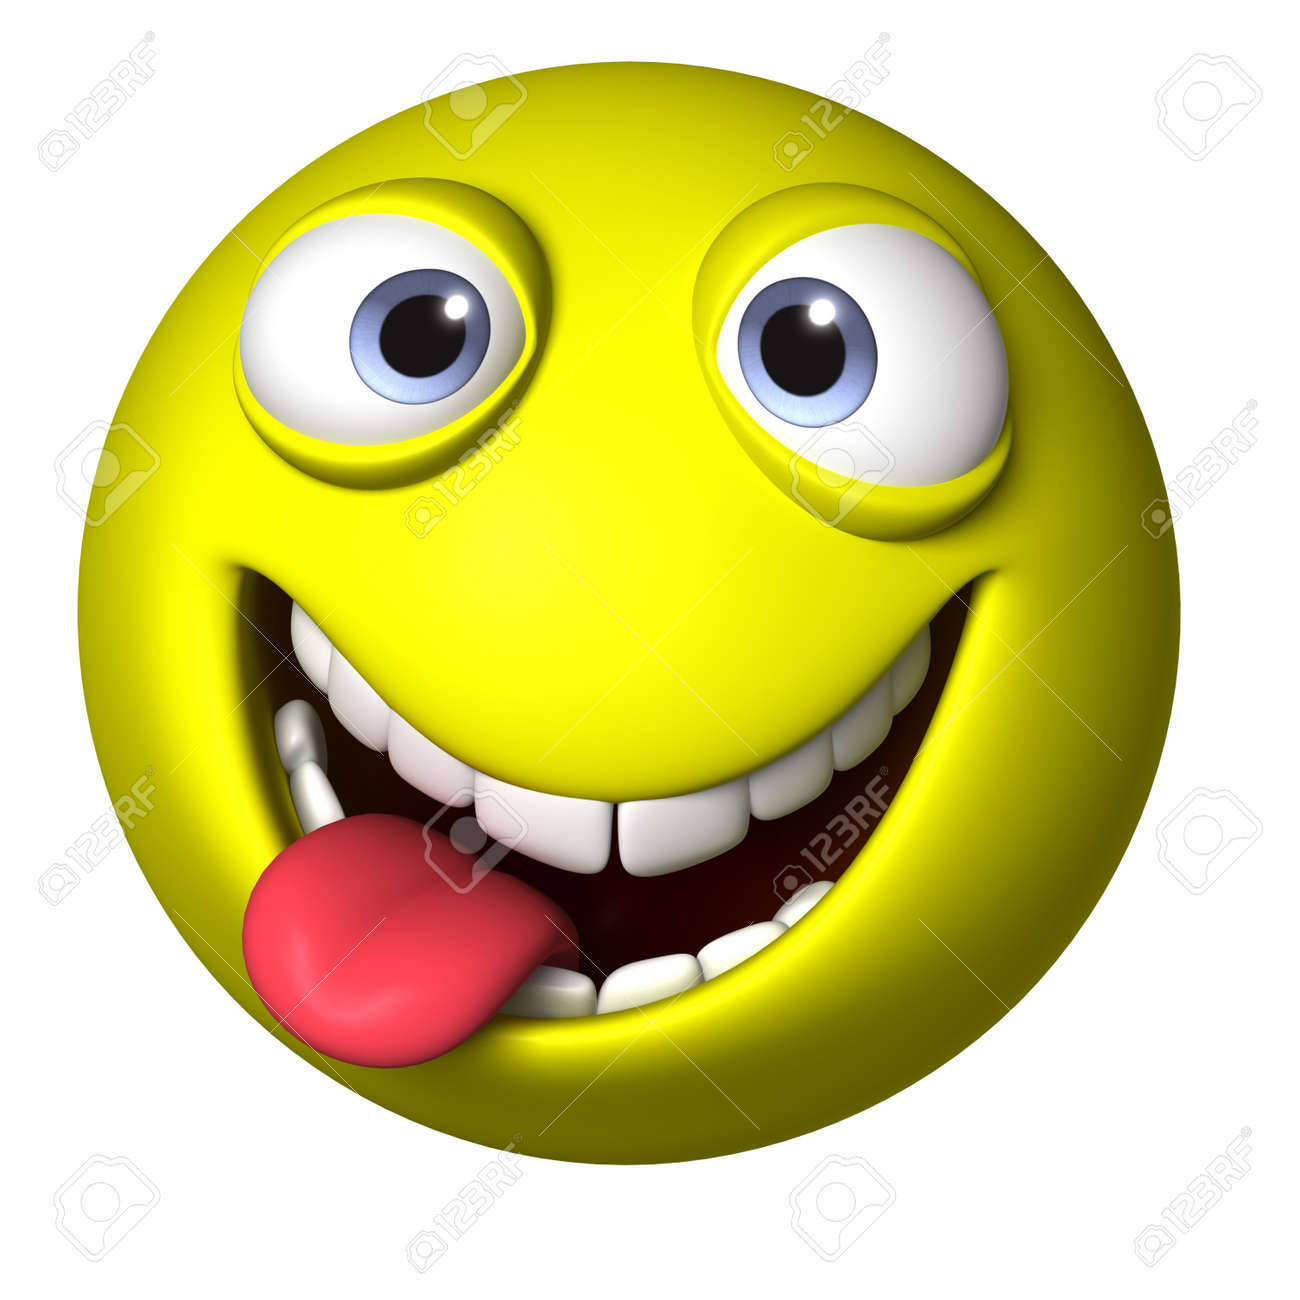 3d Cartoon Smile Face Stock Photo Picture And Royalty Free Image